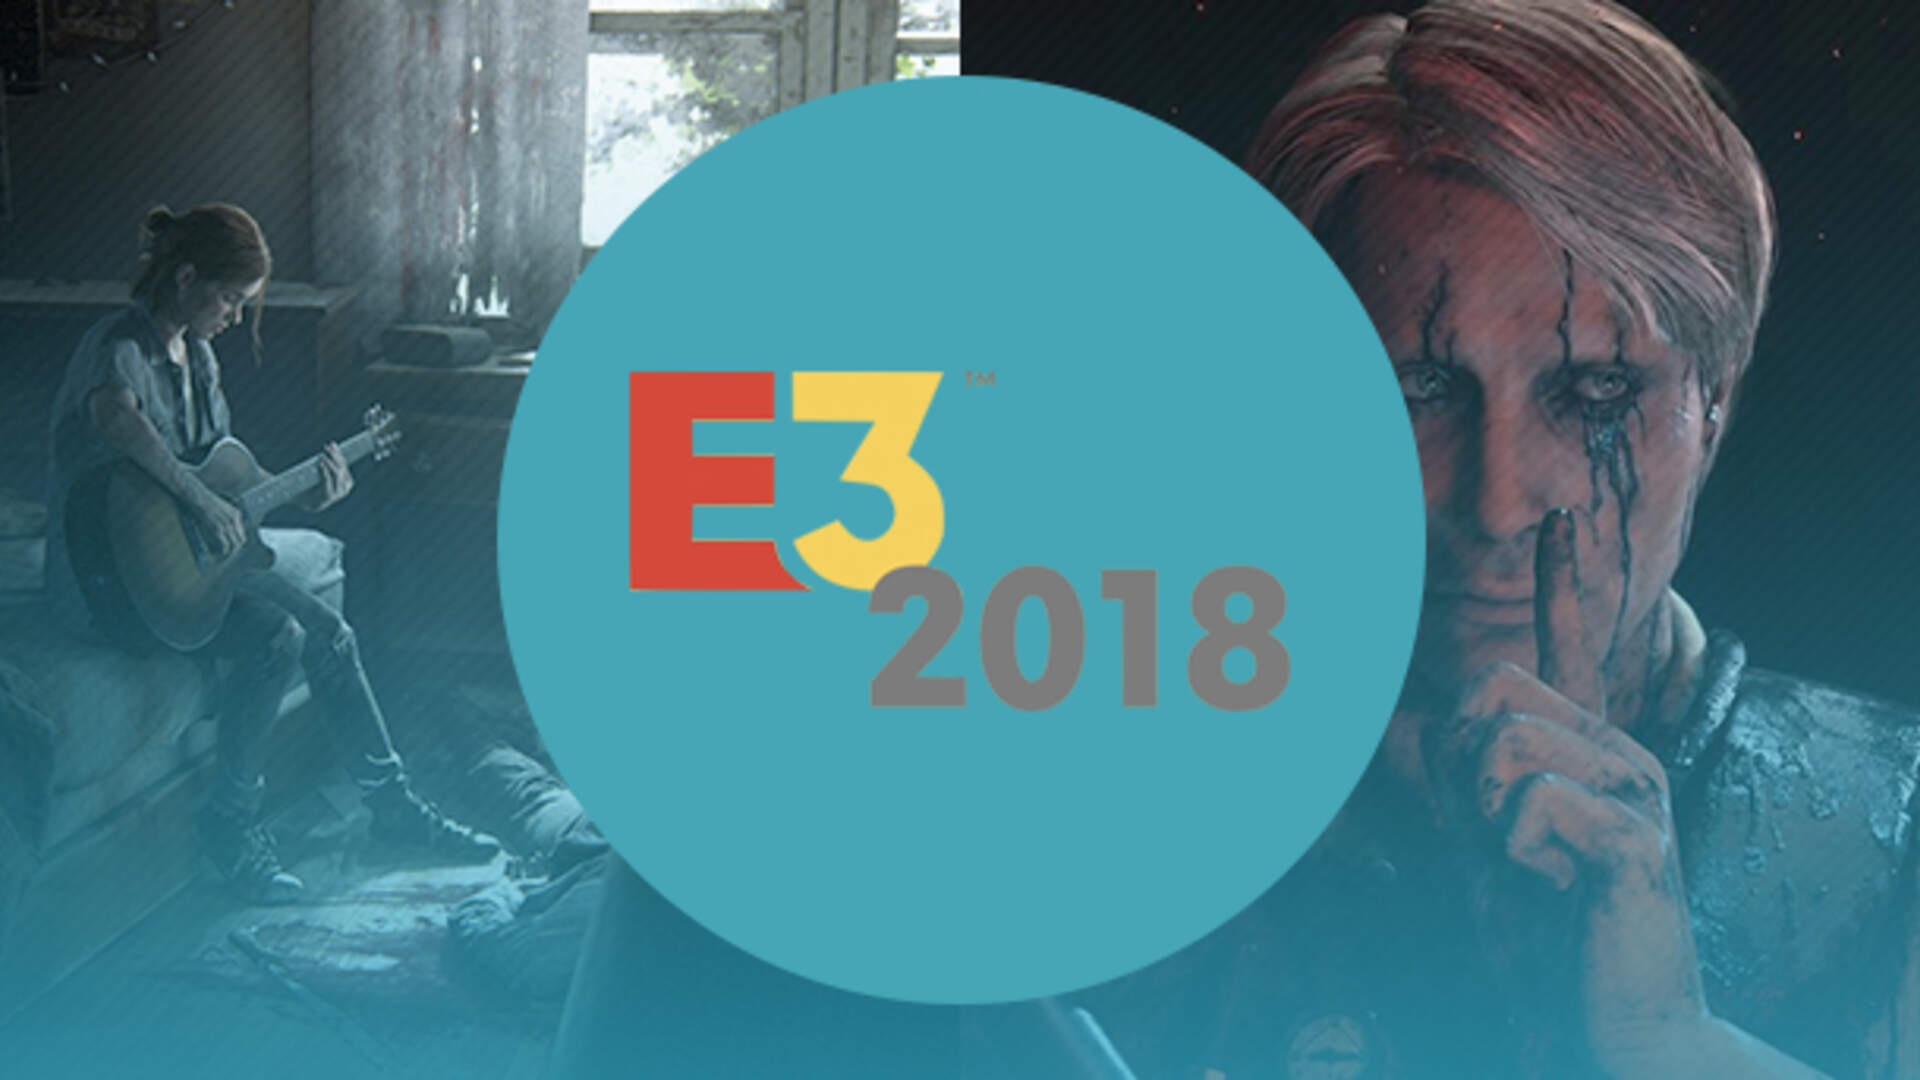 Ubisoft E3 2018 Press Conference - All Games and Announcements